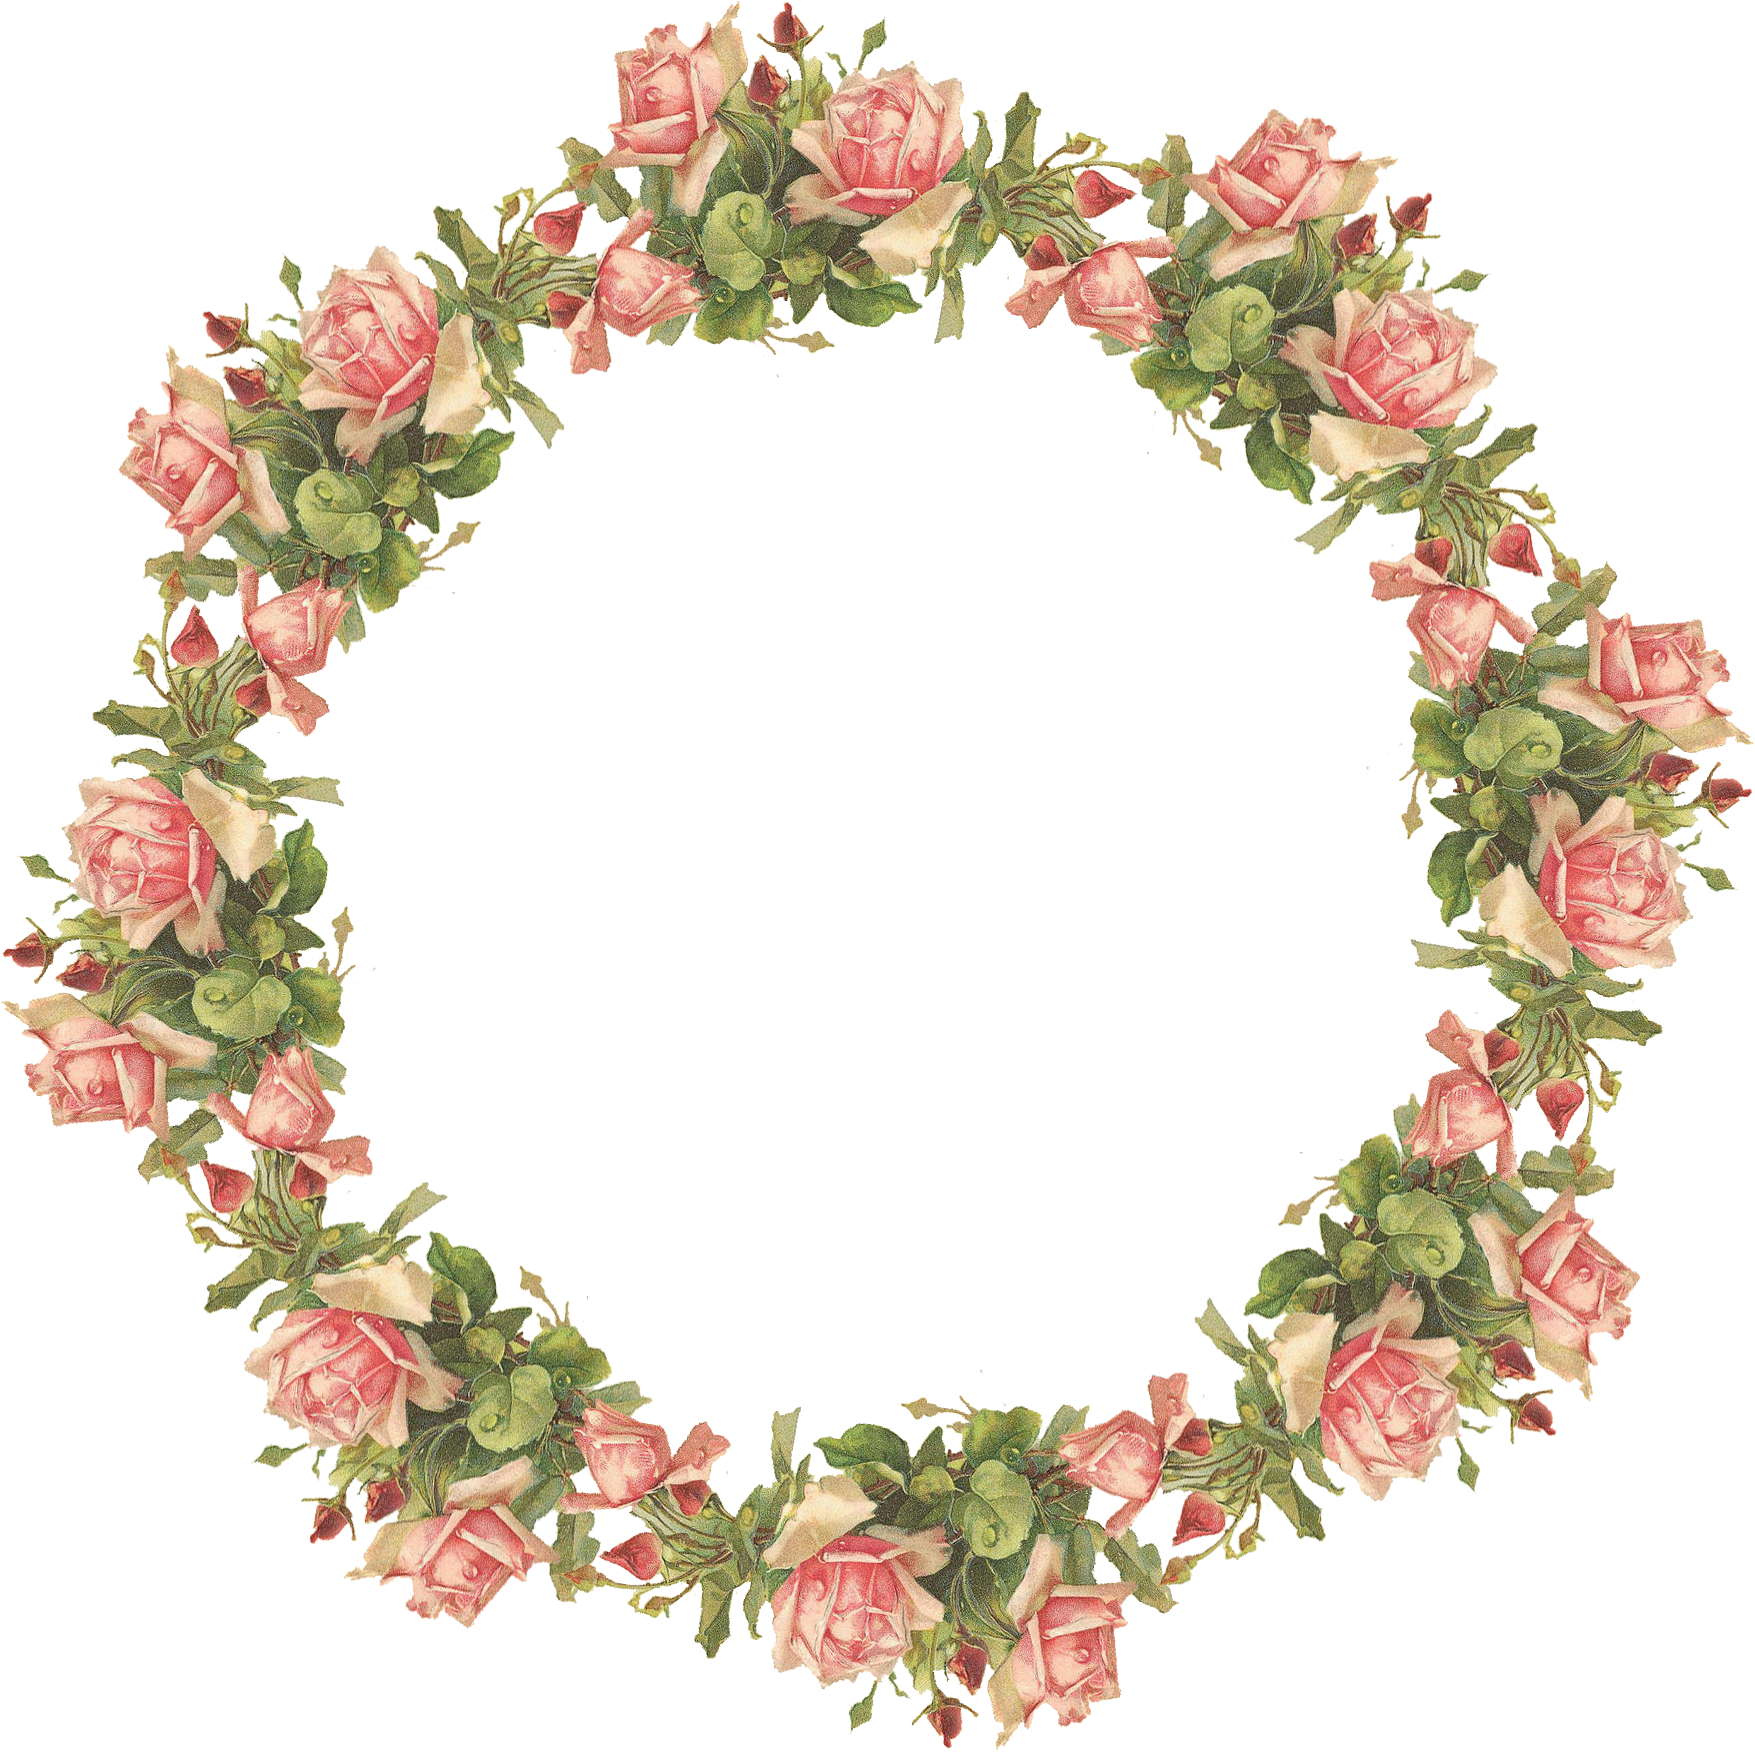 Catherine klein pink roses. Poppy clipart poppy wreath